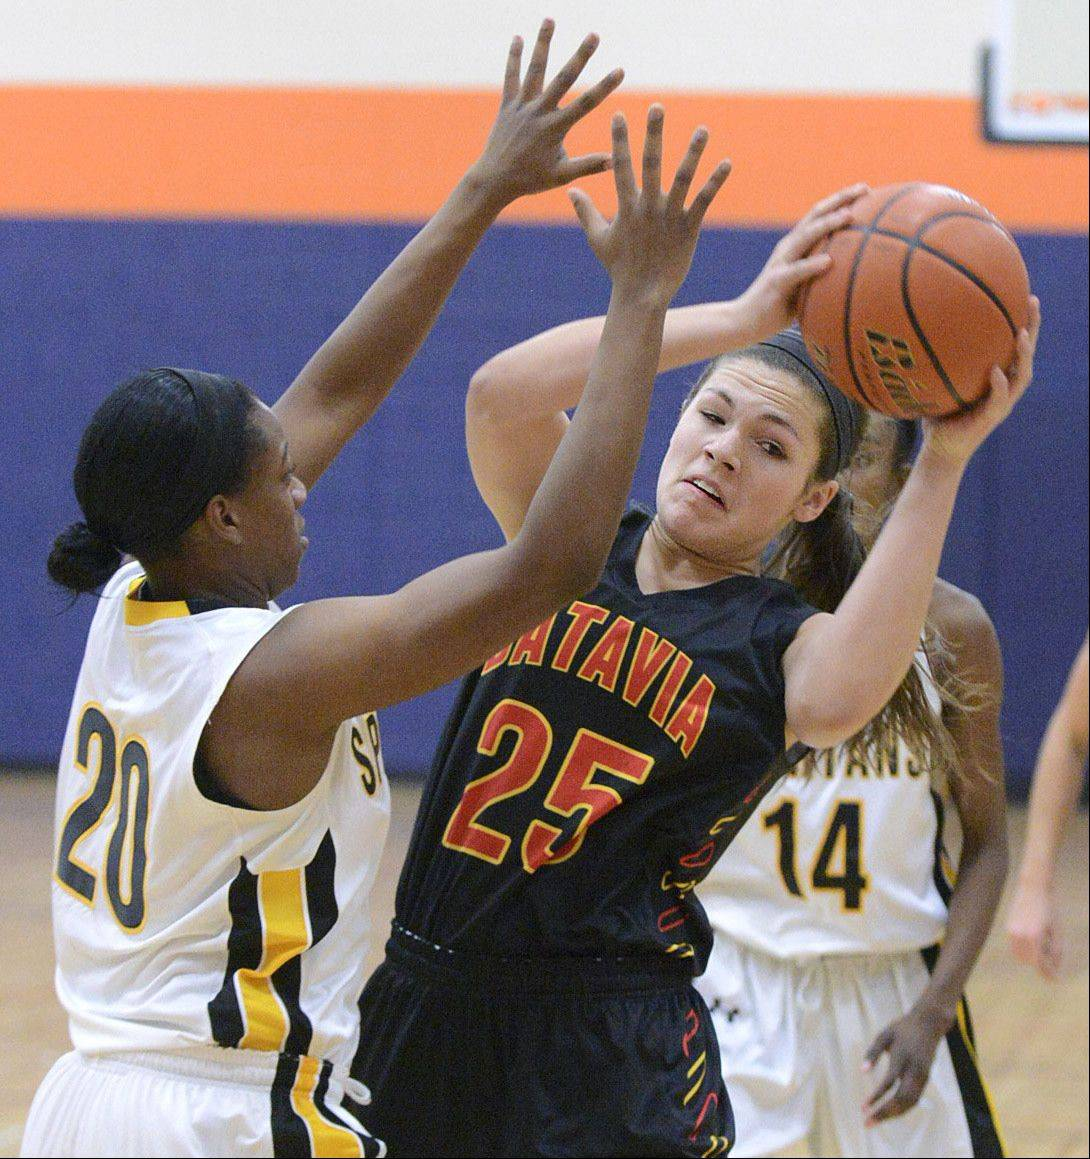 Batavia's Hannah Frazier attempts to pass around Marian Catholic's Dajhae Mullins in the first quarter.